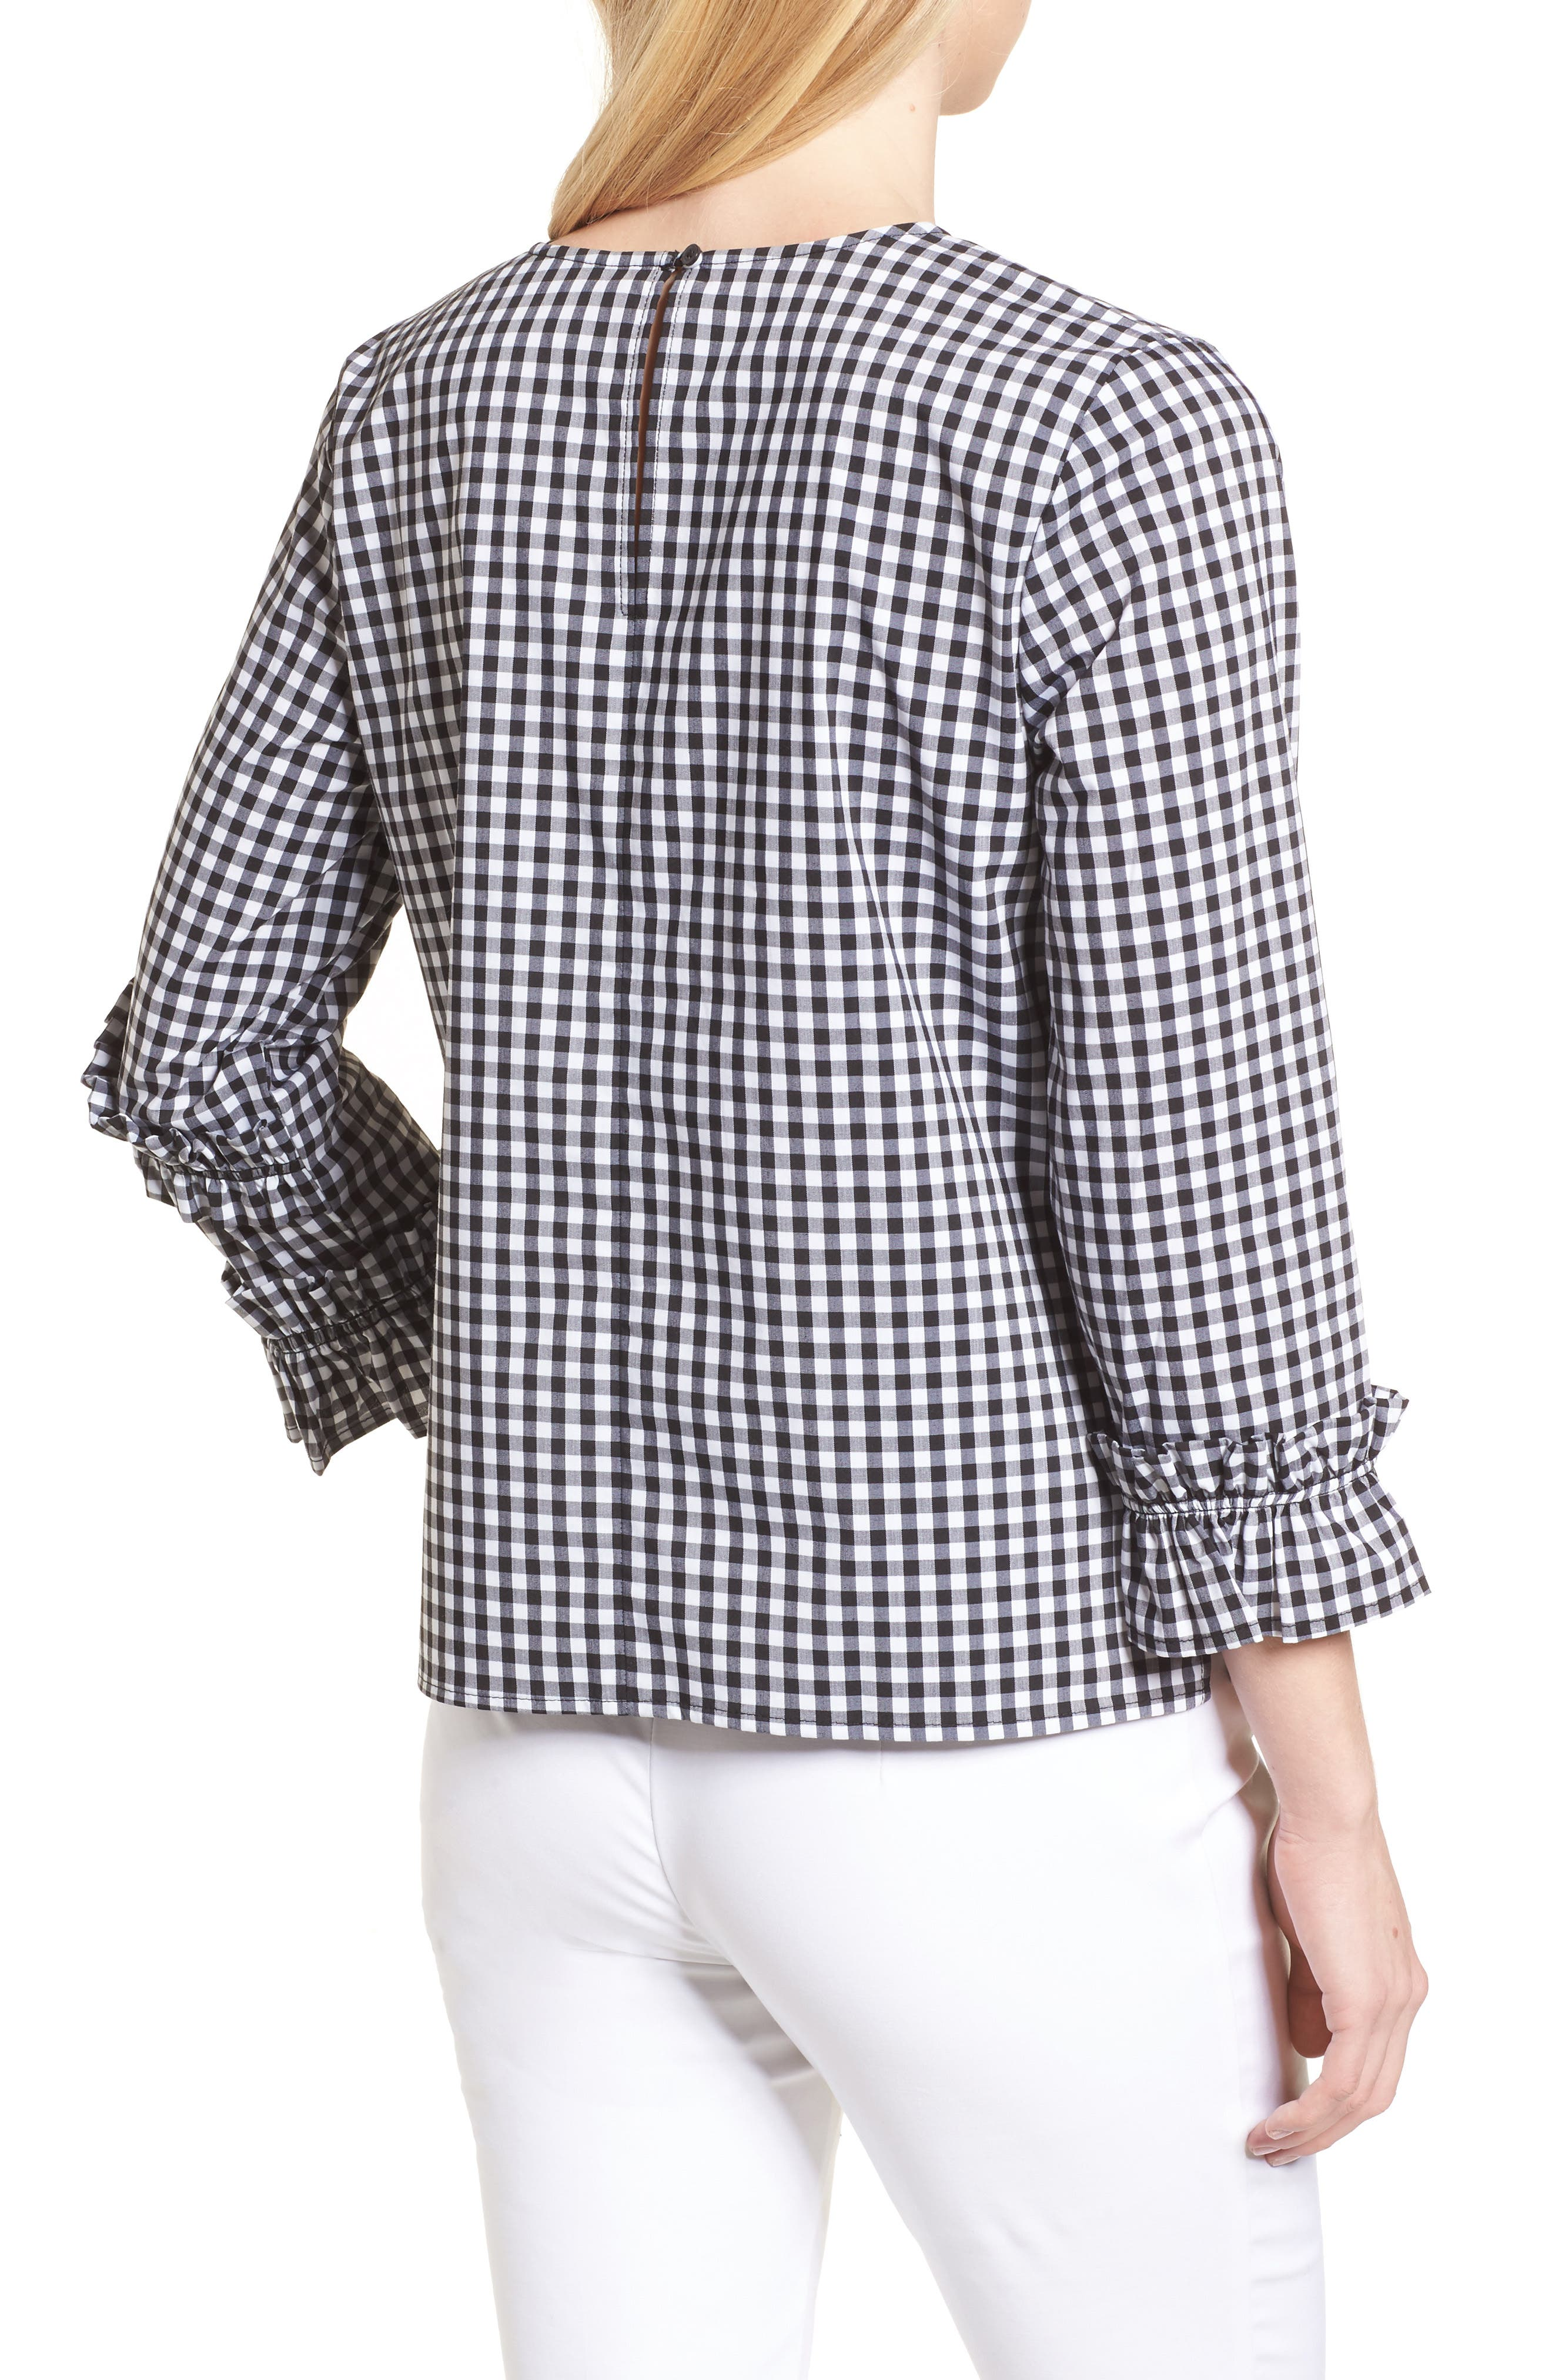 Ruffle Detail Poplin Shirt,                             Alternate thumbnail 2, color,                             001